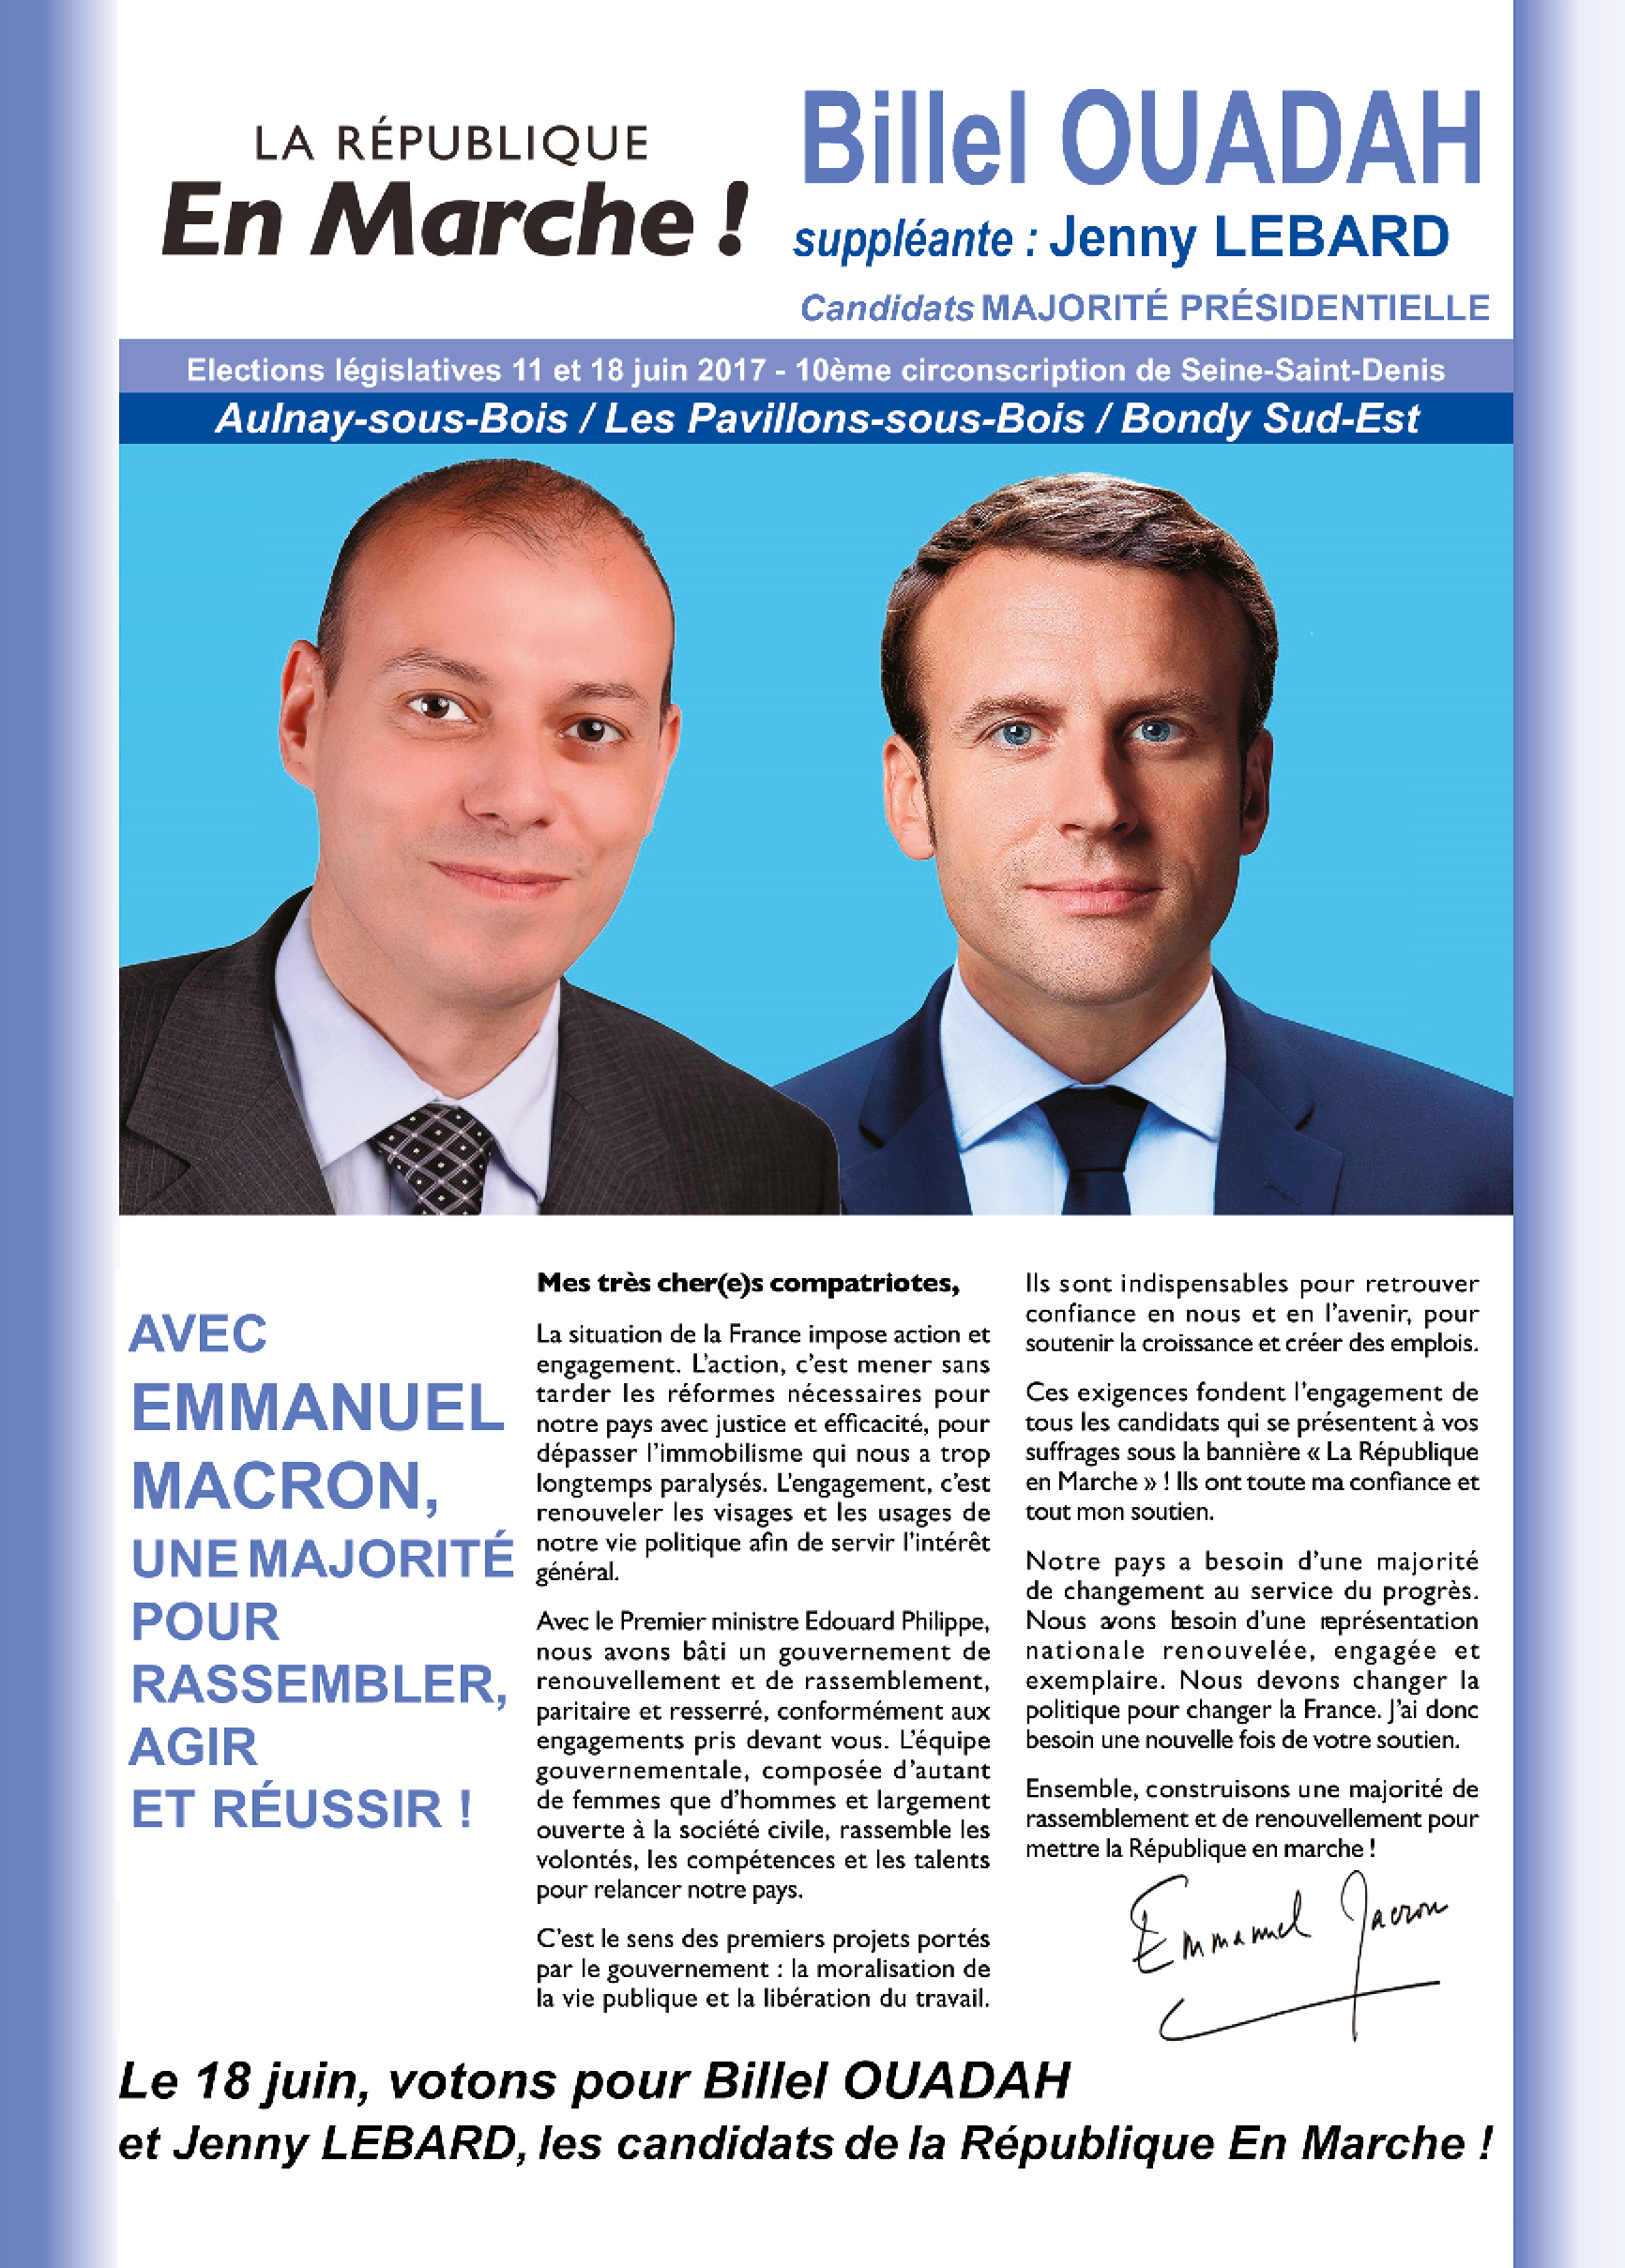 Tracts de campagne - image  on http://www.billelouadah.fr